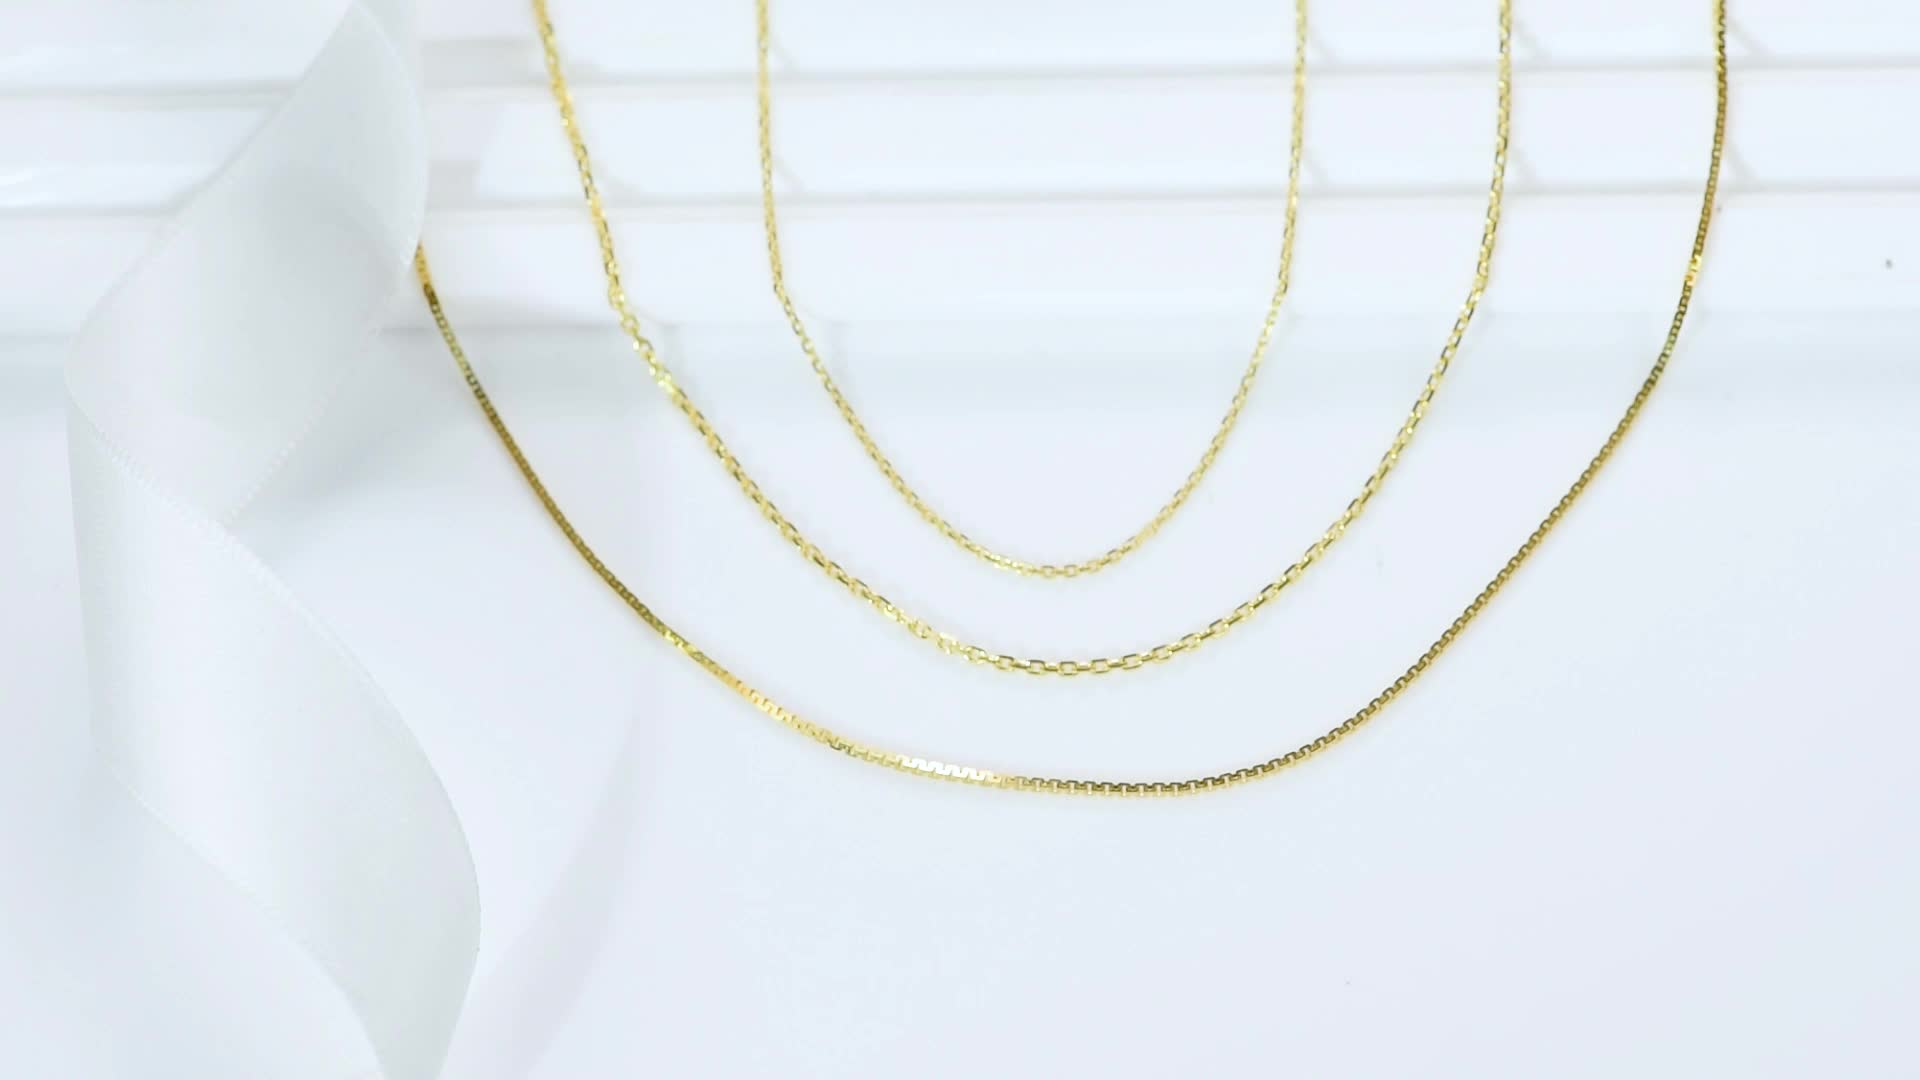 14K Solid Gold jewelry real yellow pure gold cross diamond cut chain necklace for woman